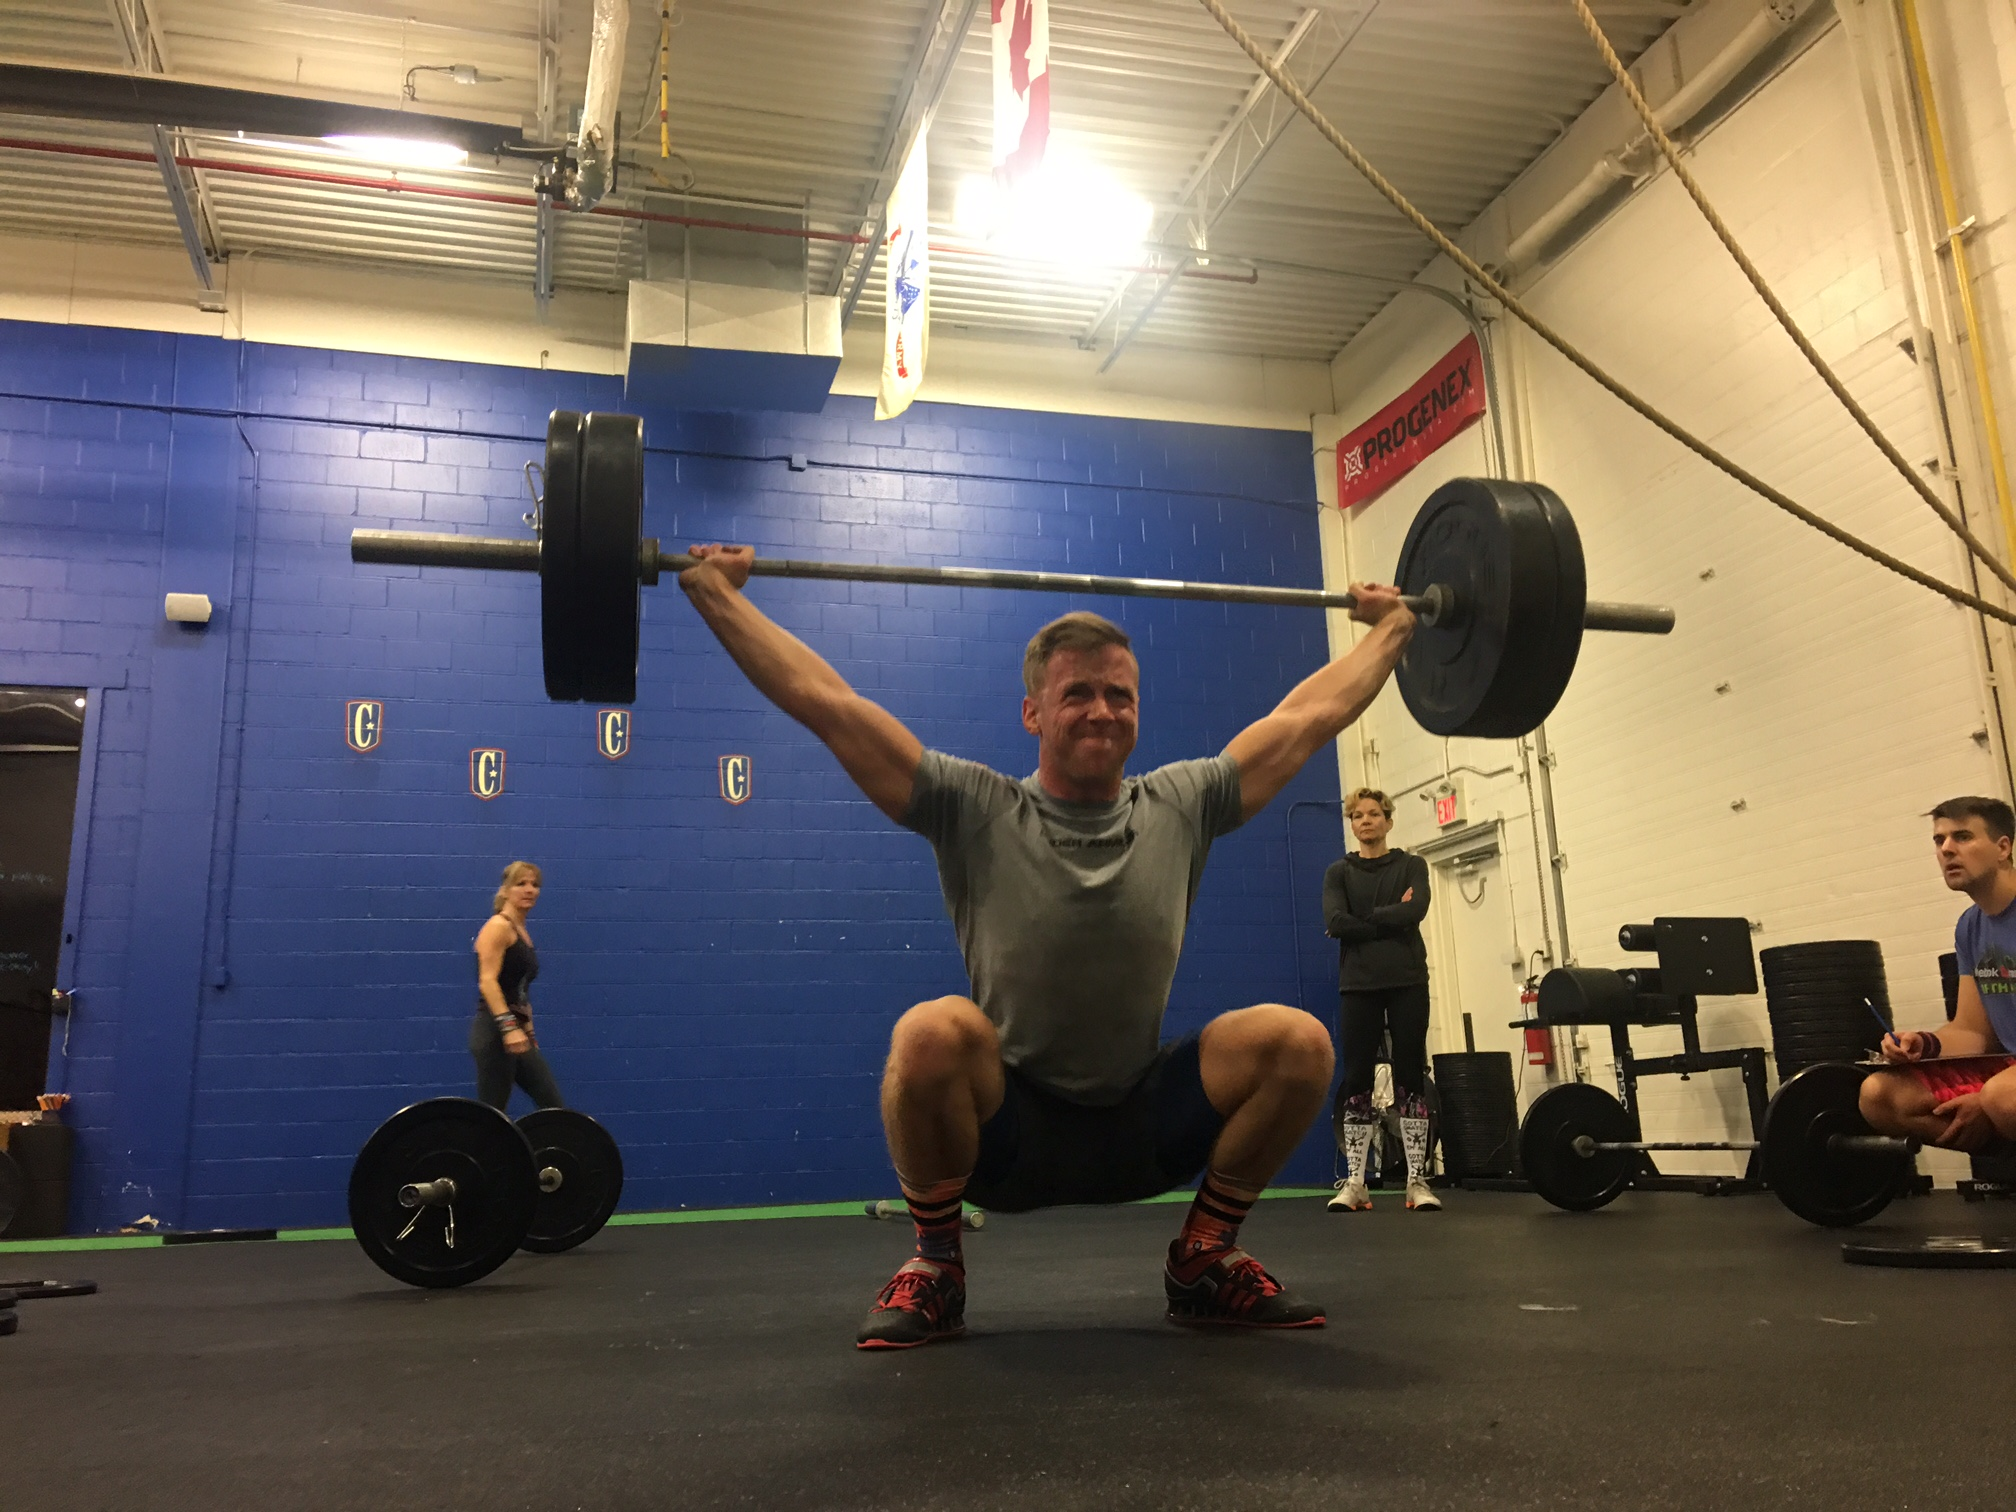 Swod    Bench Press  5x5     Metcon:      4 RFT   15 HSPU   60 Double Unders   400 Meter Row  * Post times to comments